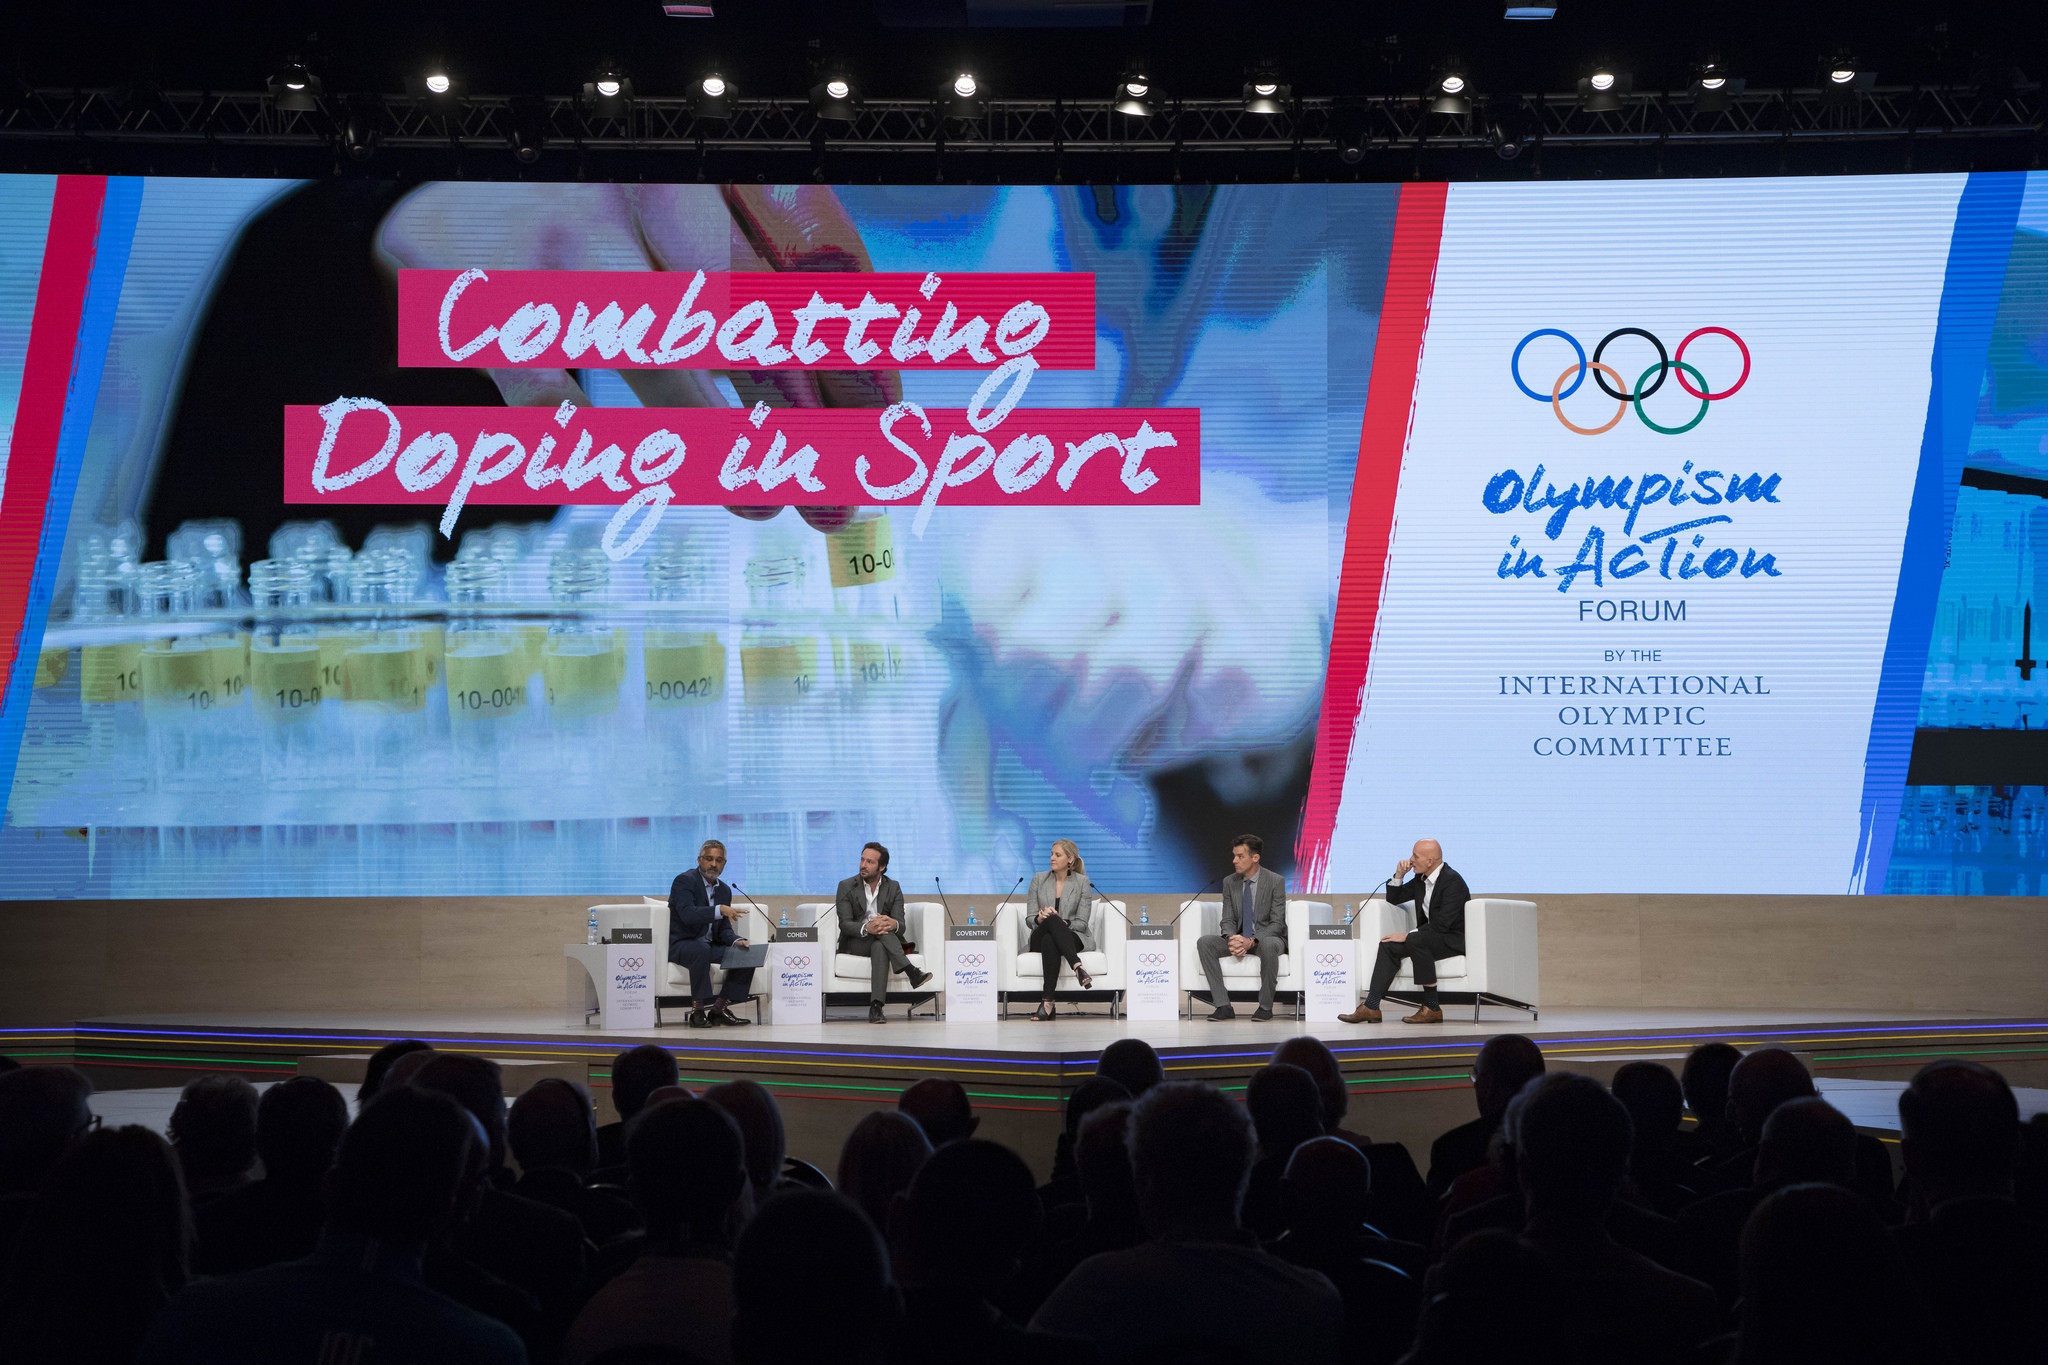 Combatting doping in sport was one of the key topics at the forum in Buenos Aires ©IOC